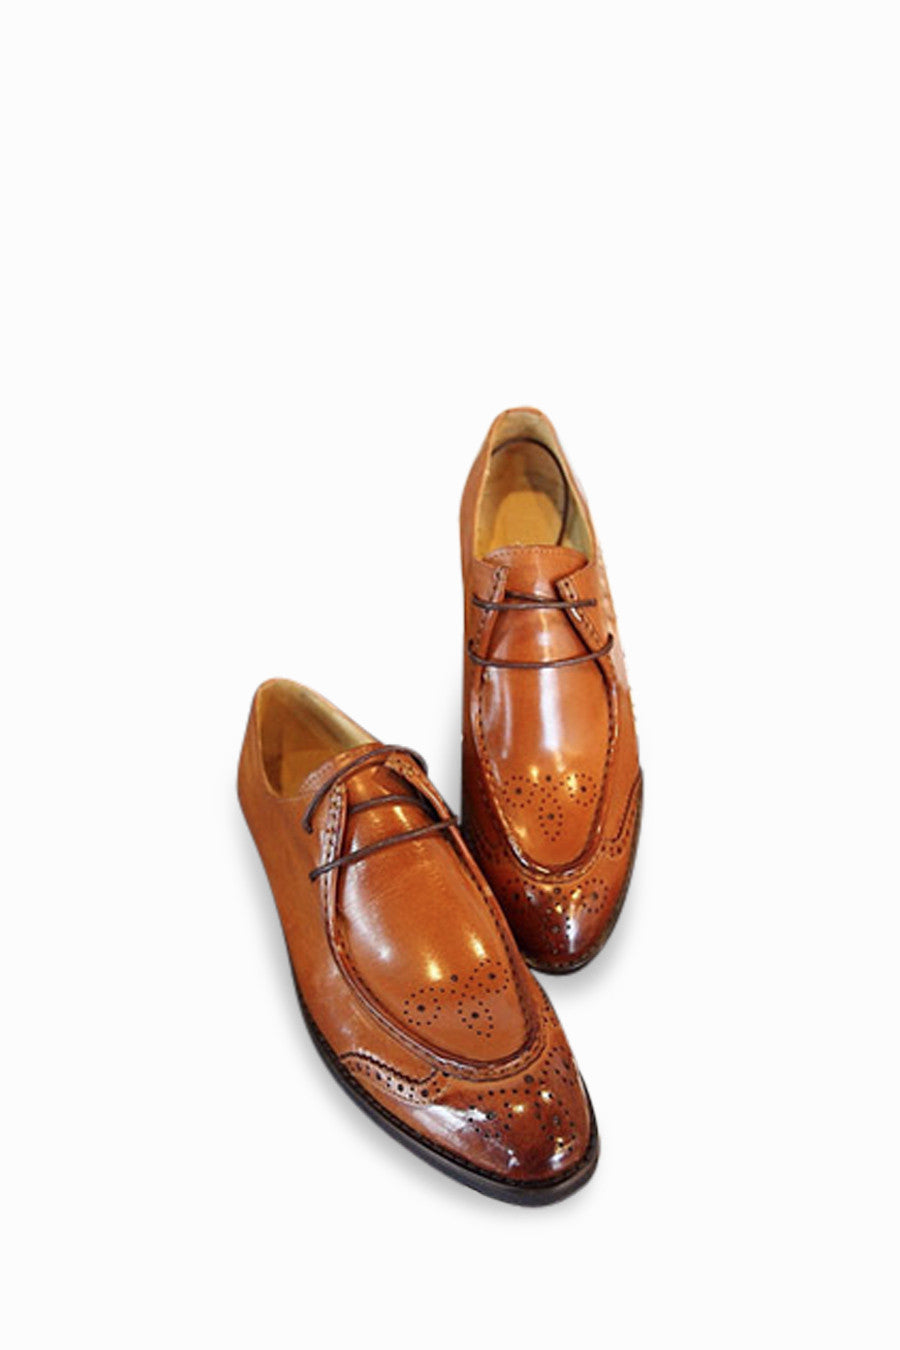 Retro Brogues In Caramel